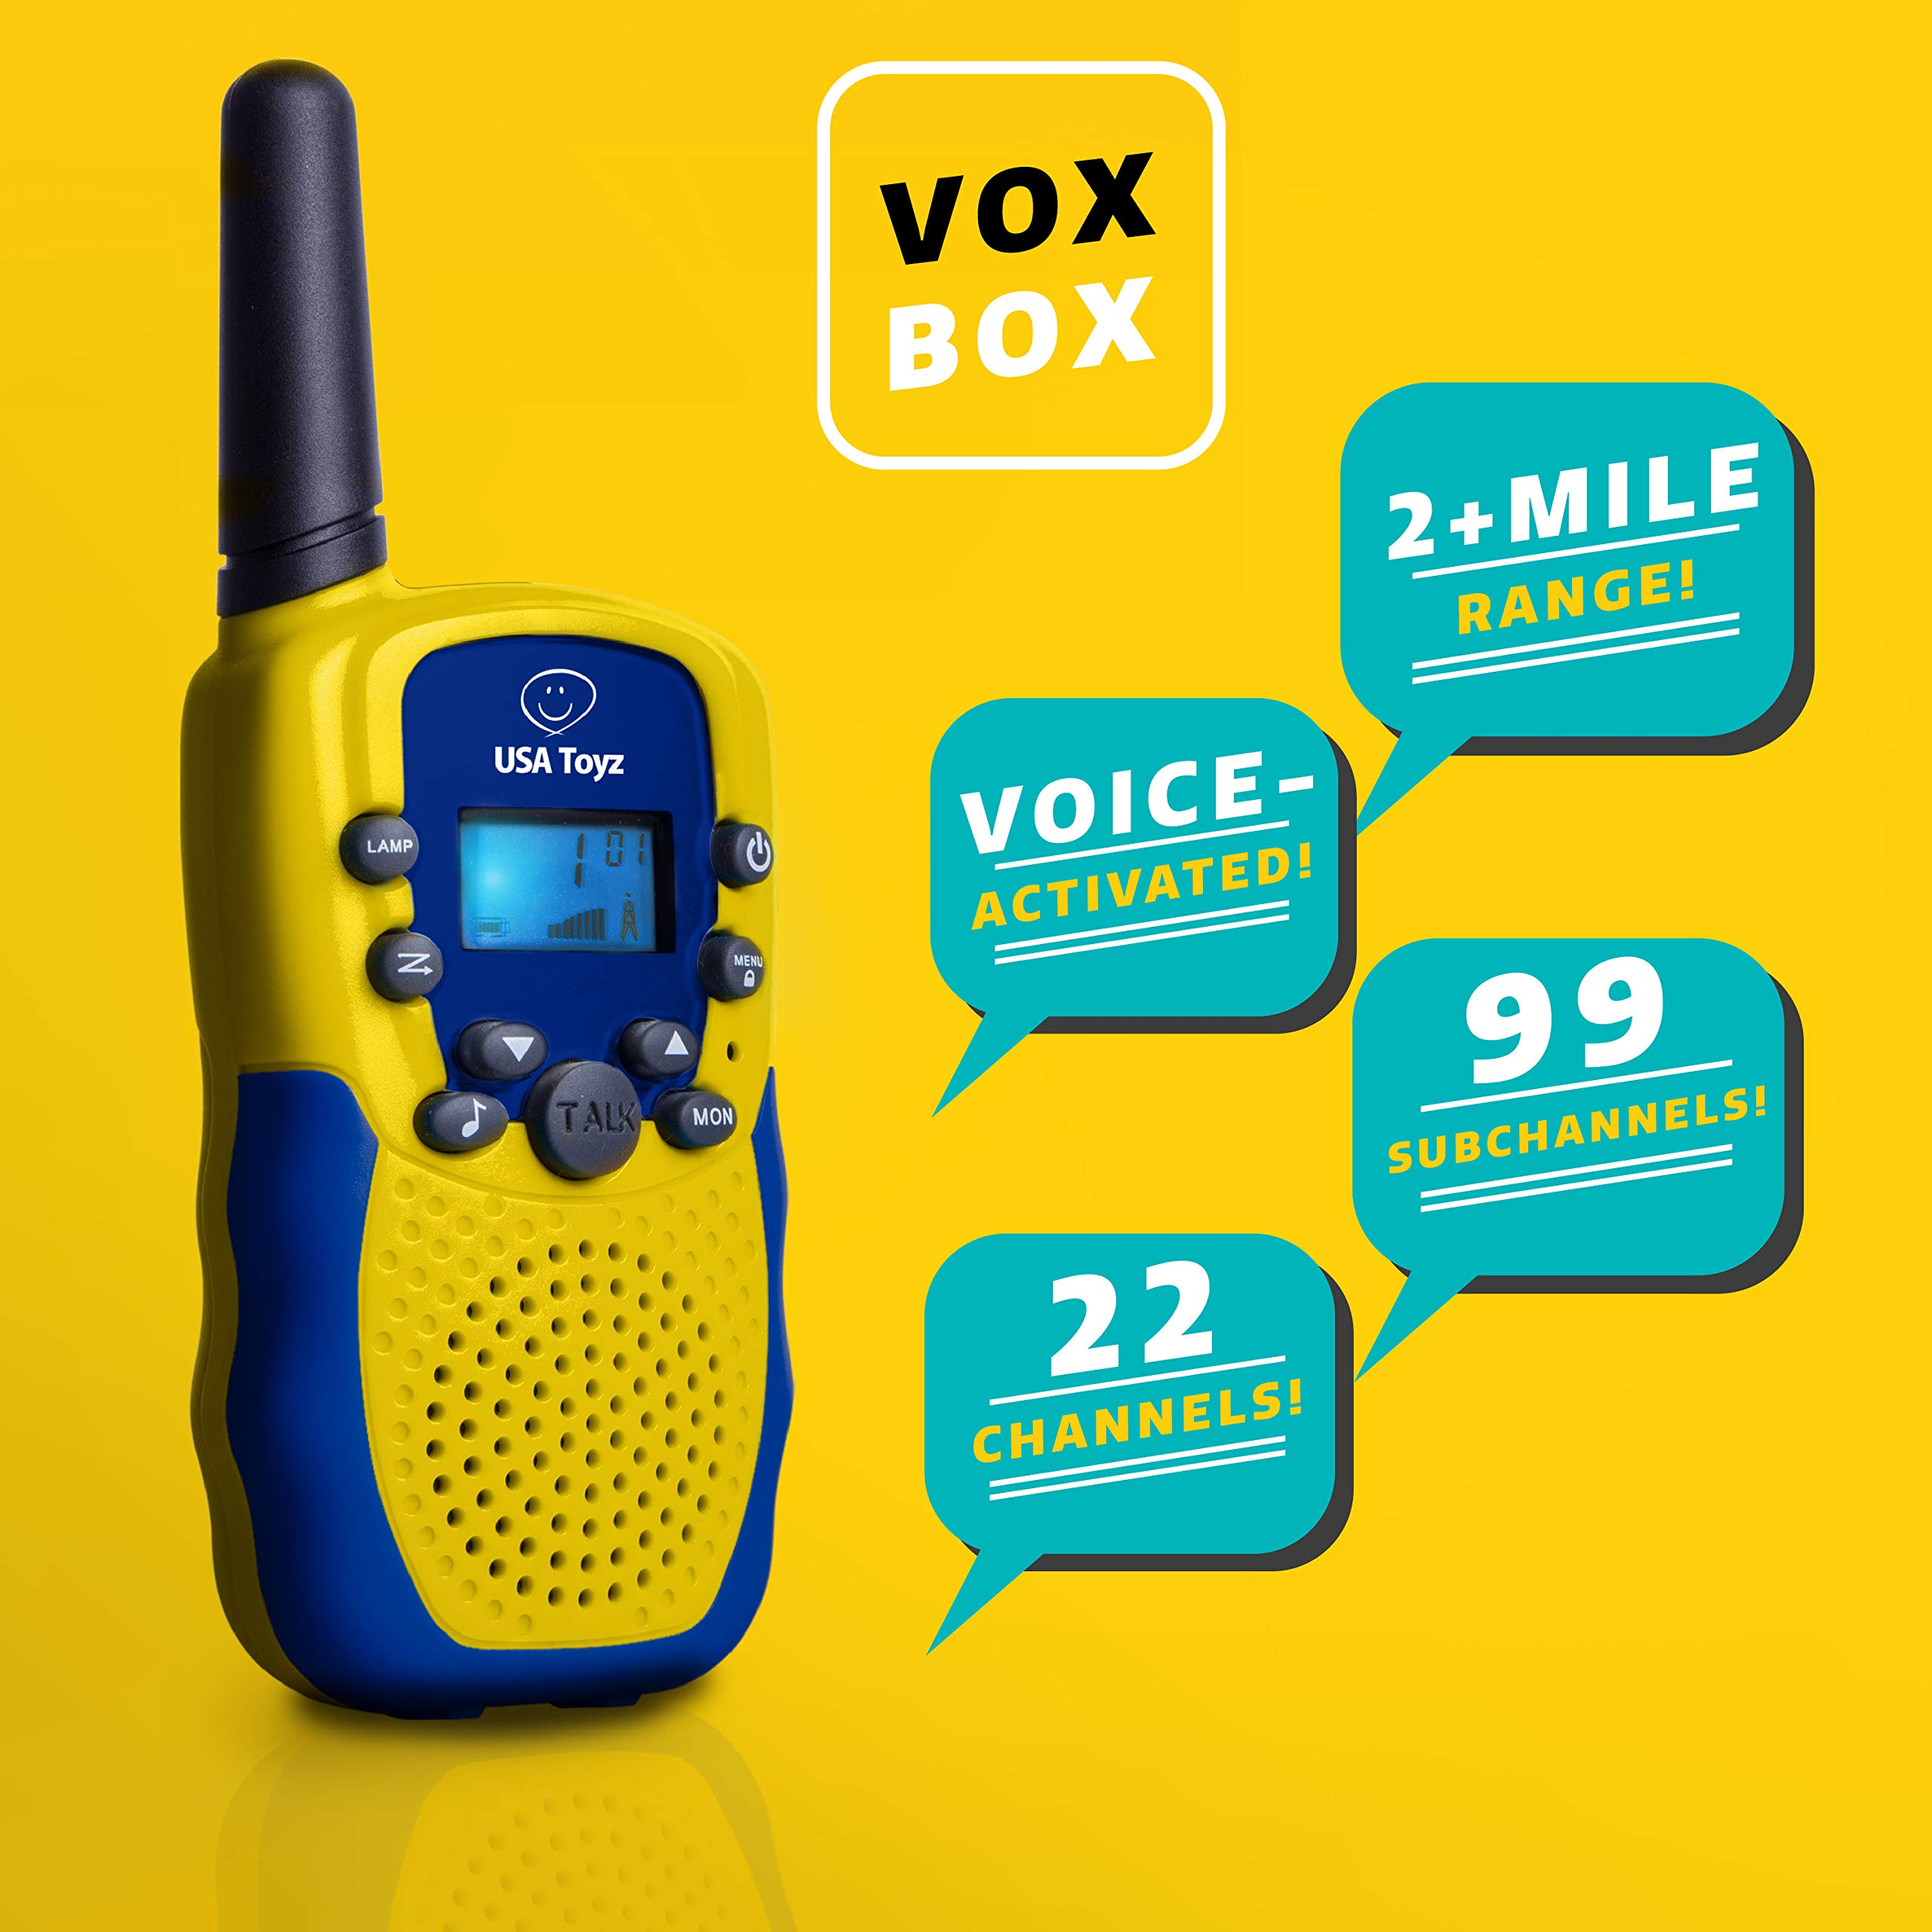 USA Toyz Walkie Talkies with Binoculars for Kids - Vox Box Voice Activated Walkie Talkies for Boys or Girls, Long Range Walkie Talkie Toys Set by USA Toyz (Image #2)